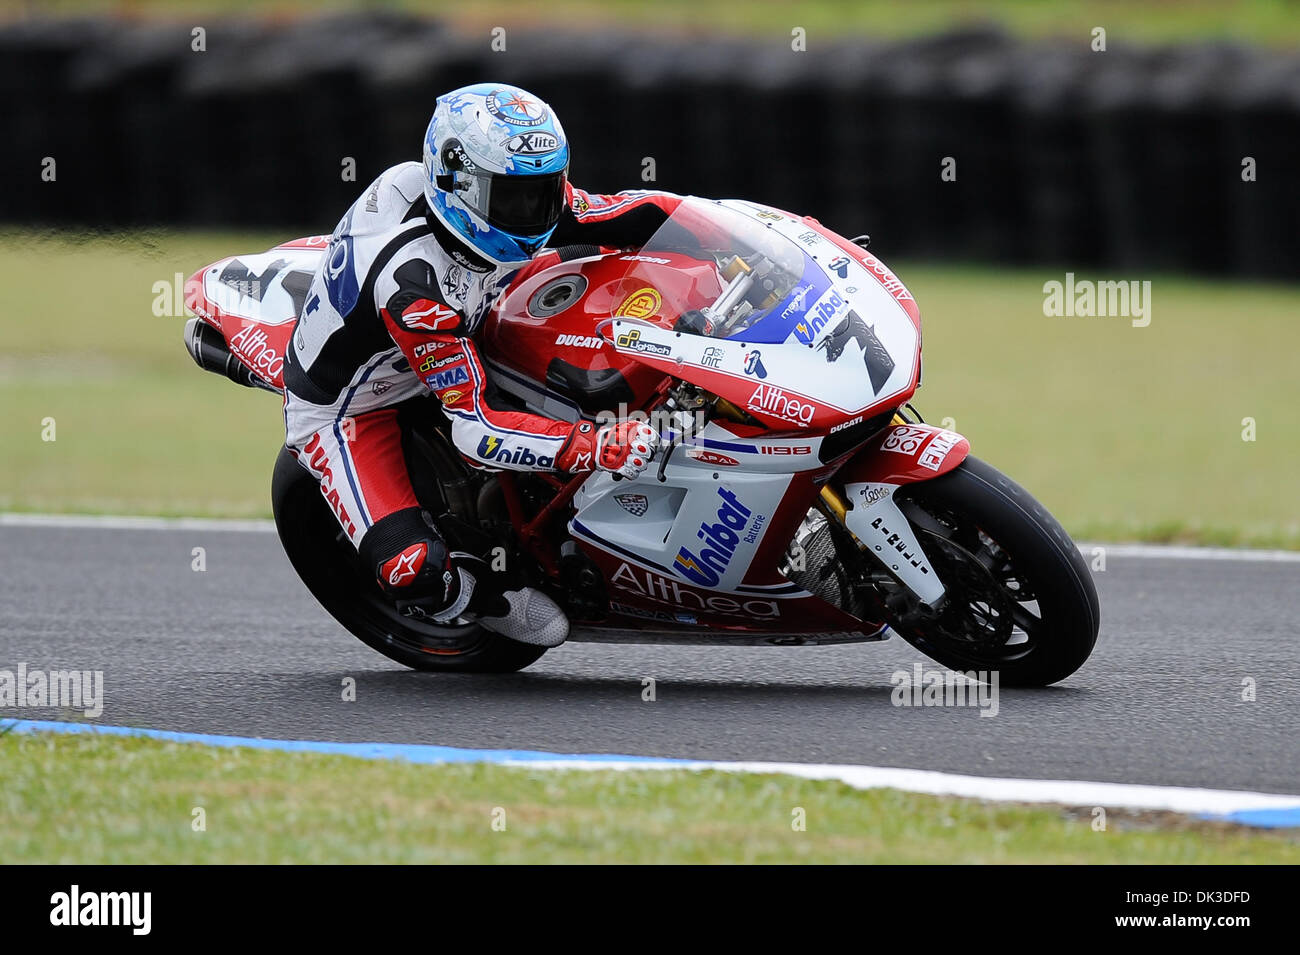 Feb. 27, 2011 - Phillip Island, Victoria, Australia - Carlos Checa (ESP) riding the Ducati 1098R (7) of the Althea Stock Photo